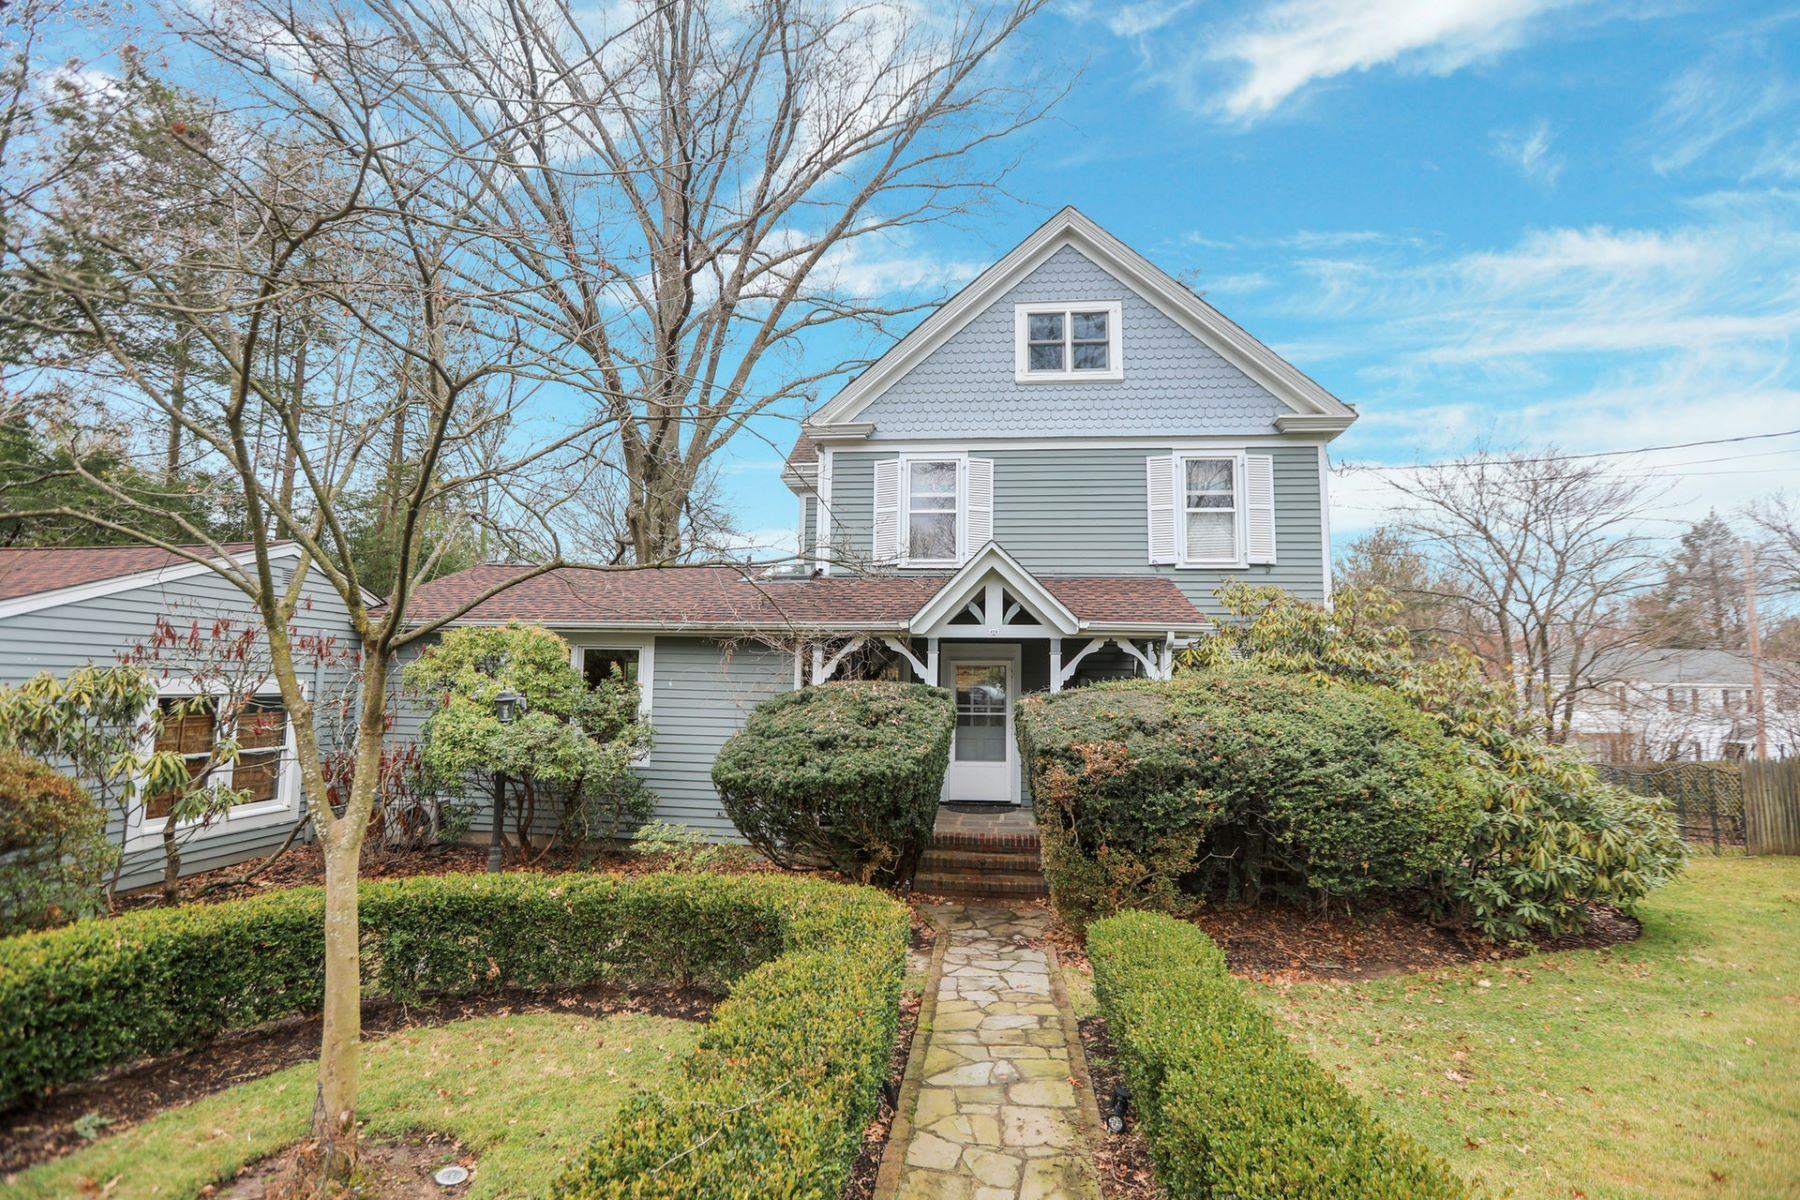 Single Family Homes for Active at Wonderful Victorian 173 Serpentine Rd Tenafly, New Jersey 07670 United States